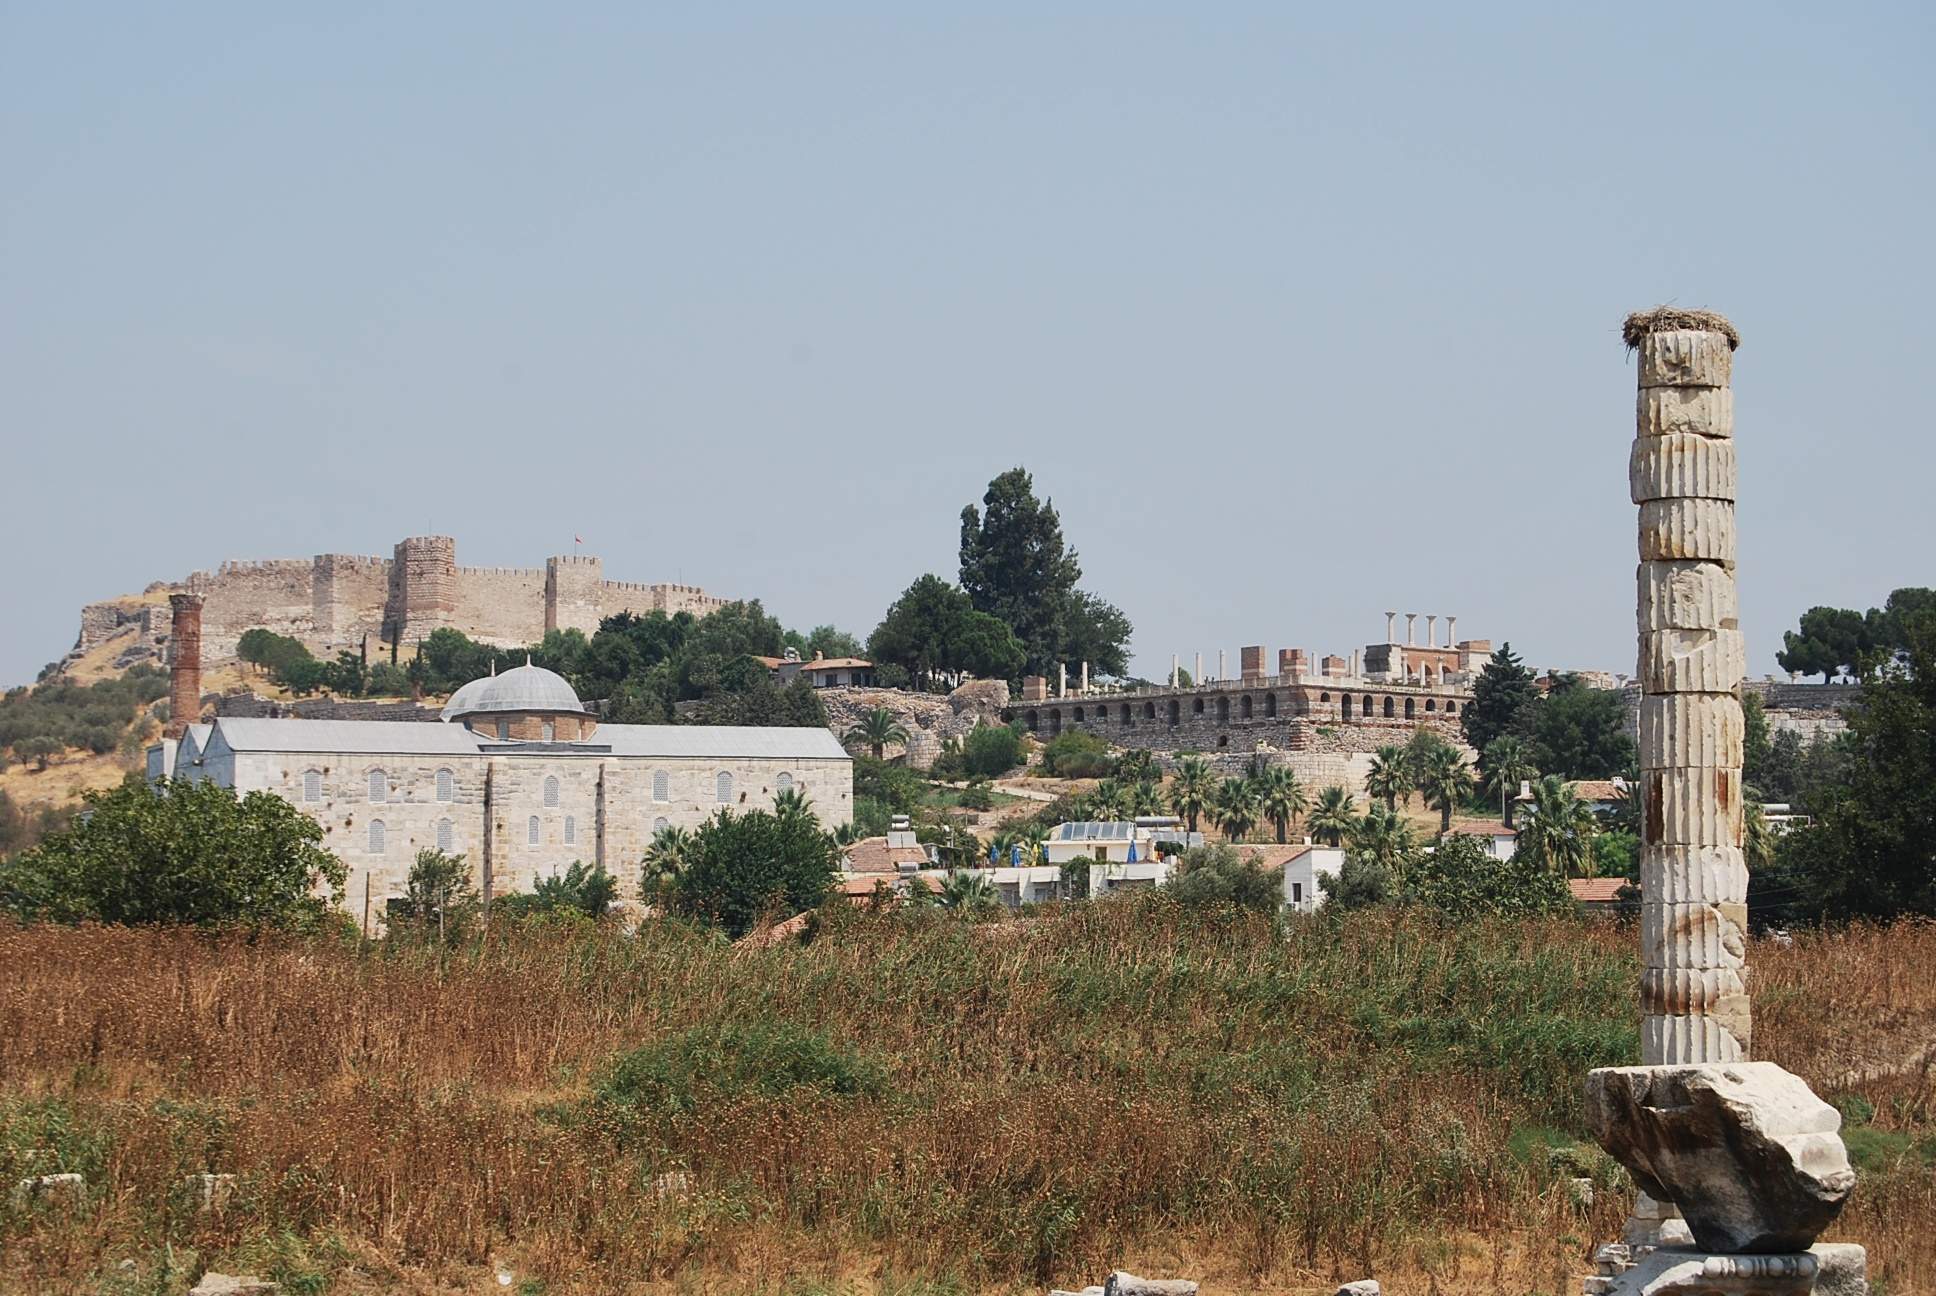 Temple of Artemis at Ephesus - Ancient History Encyclopedia Pictures of the temple of artemis at ephesus